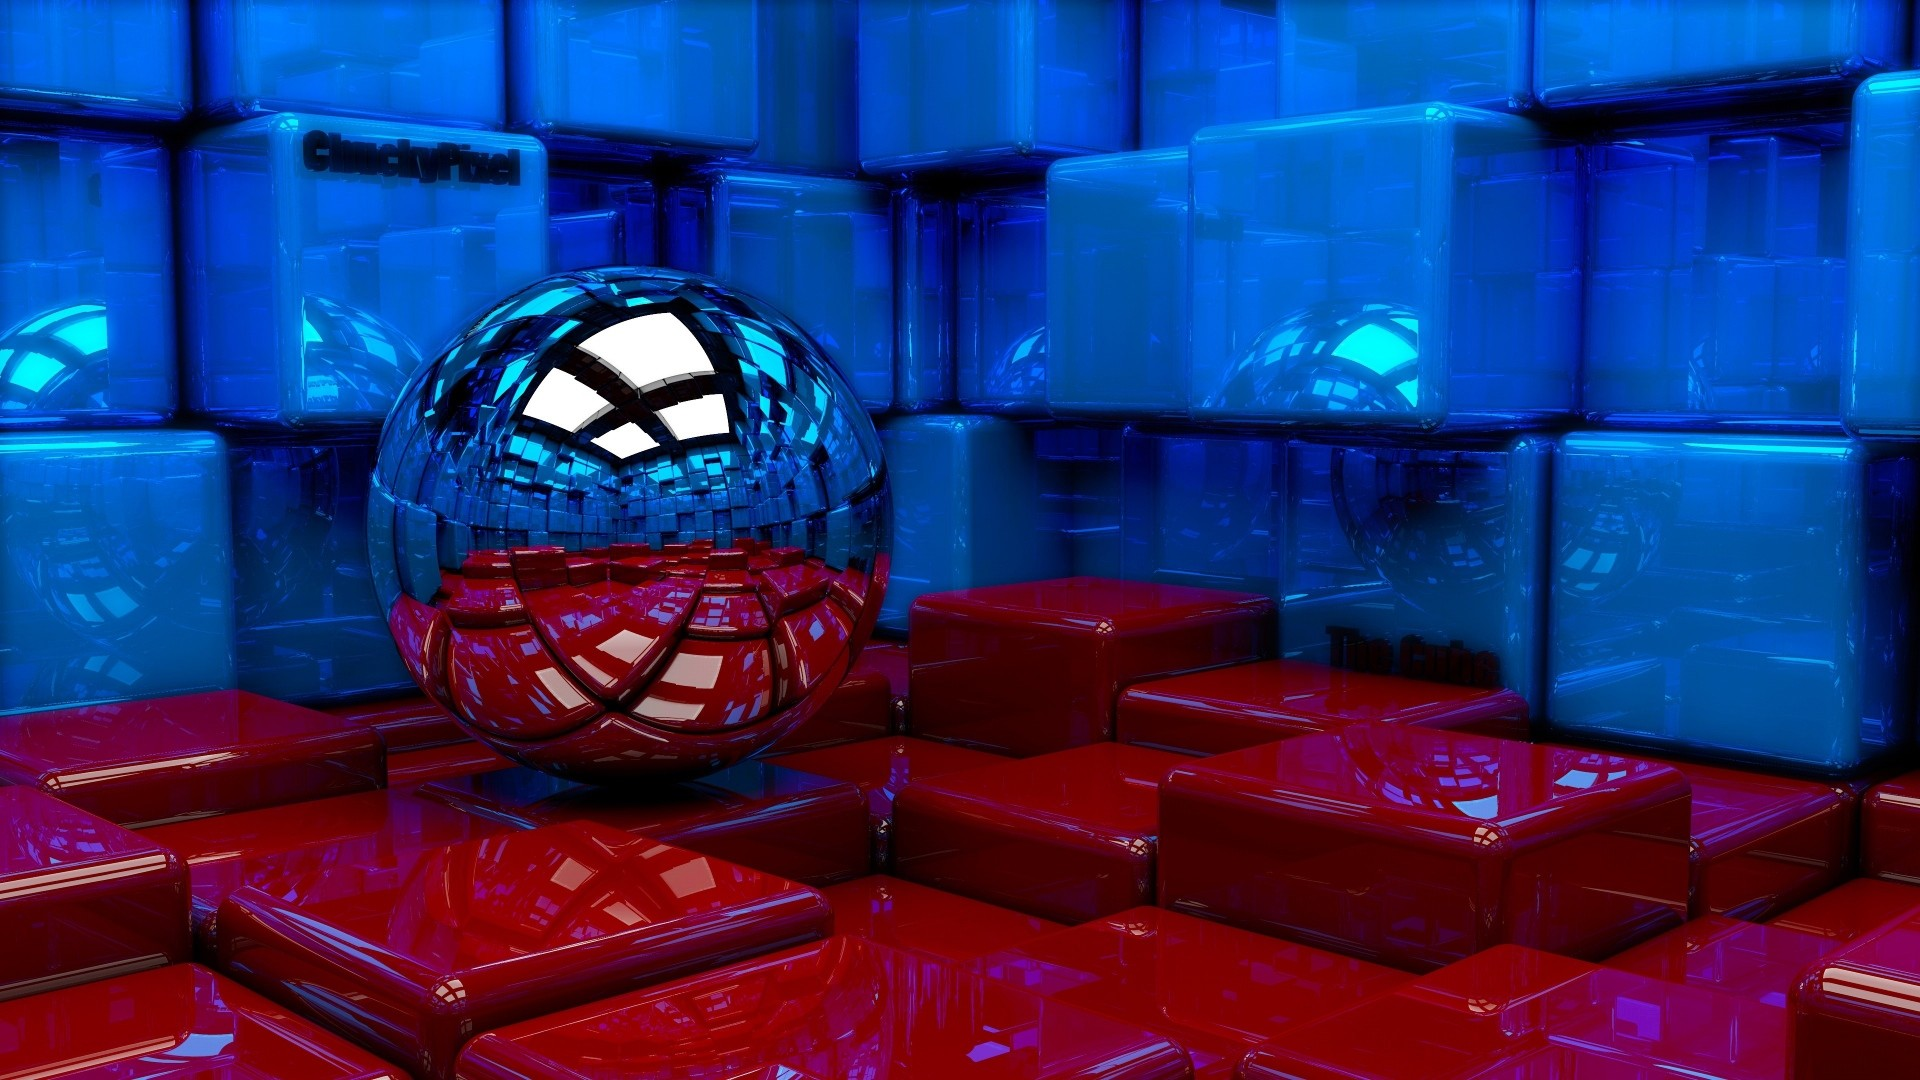 1920x1080 Preview wallpaper ball, cubes, metal, blue, red, reflection